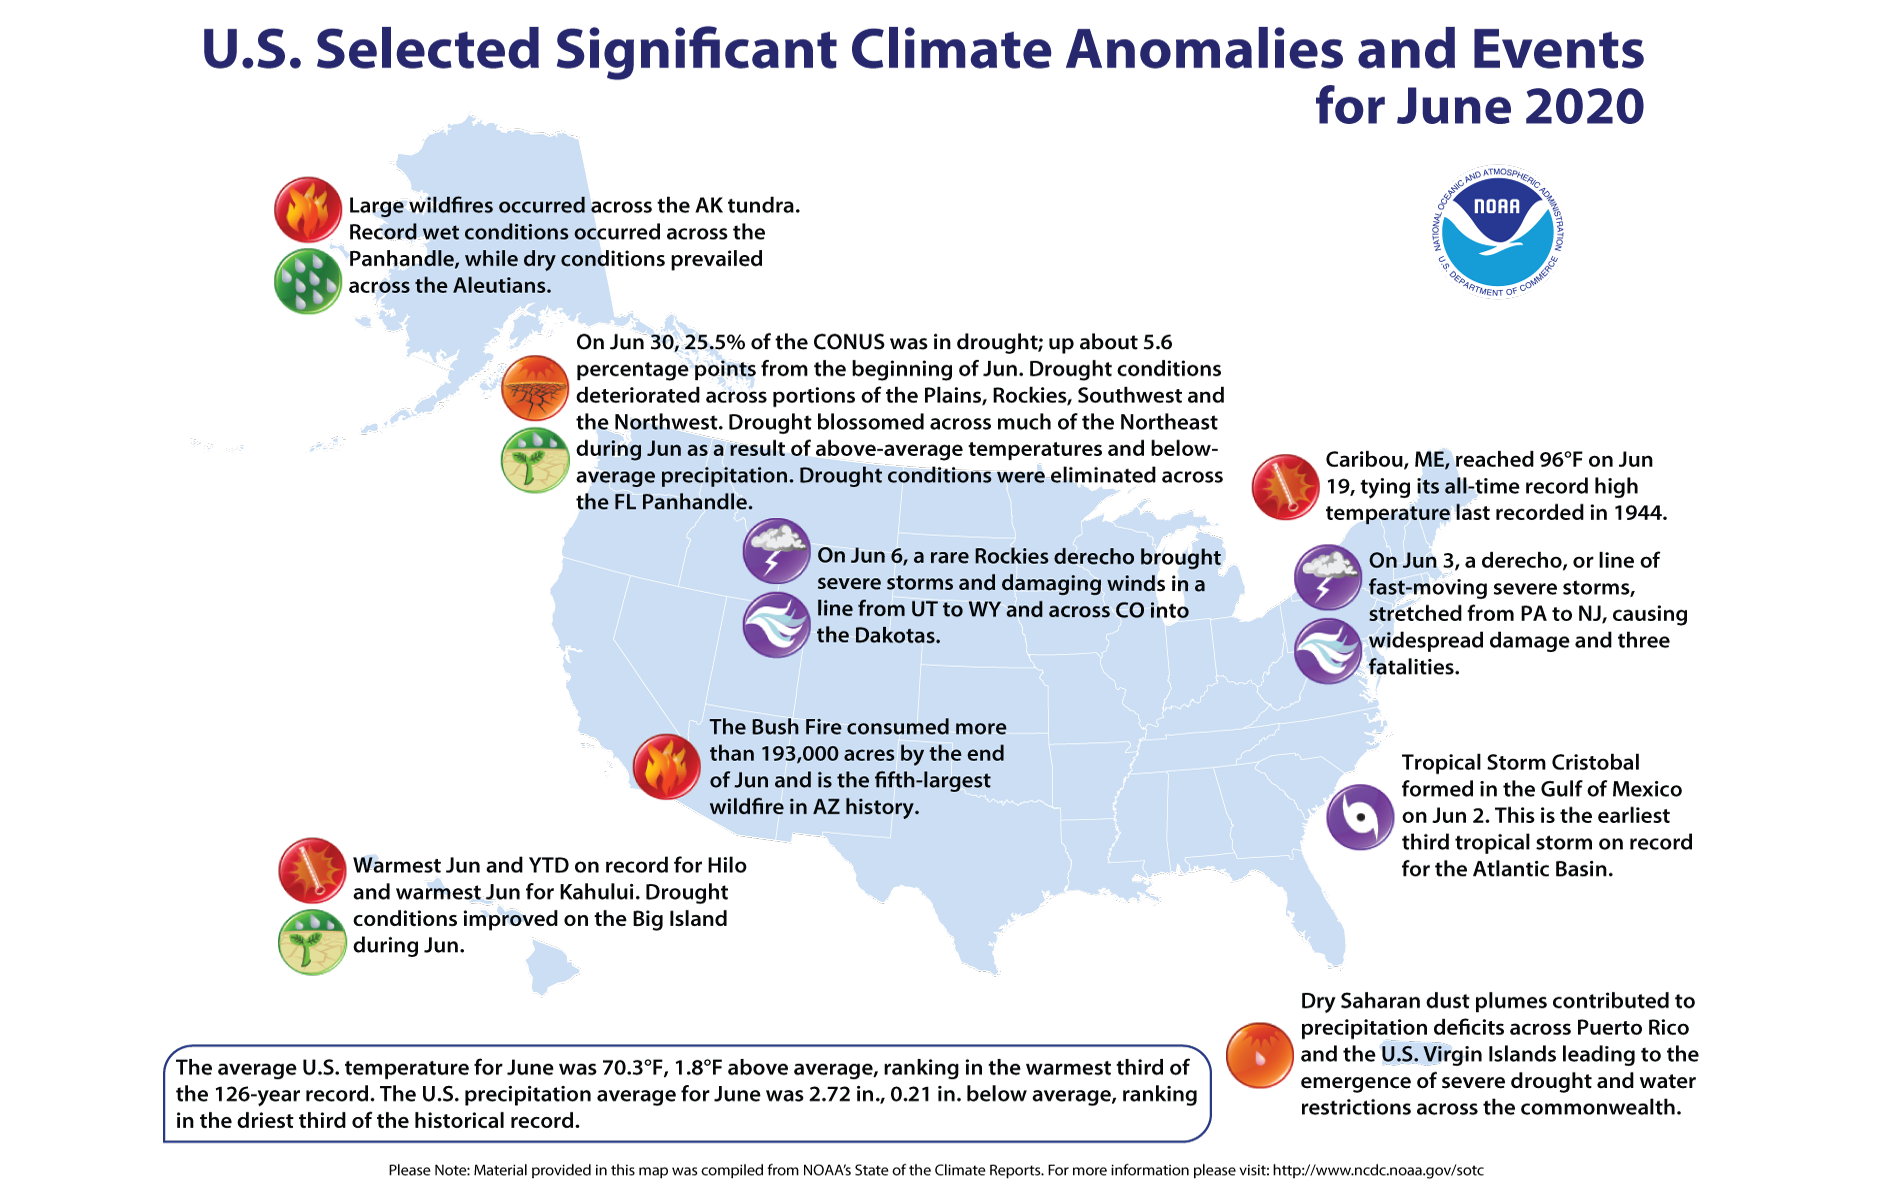 June was Relatively Hot and Dry overall for U.S.